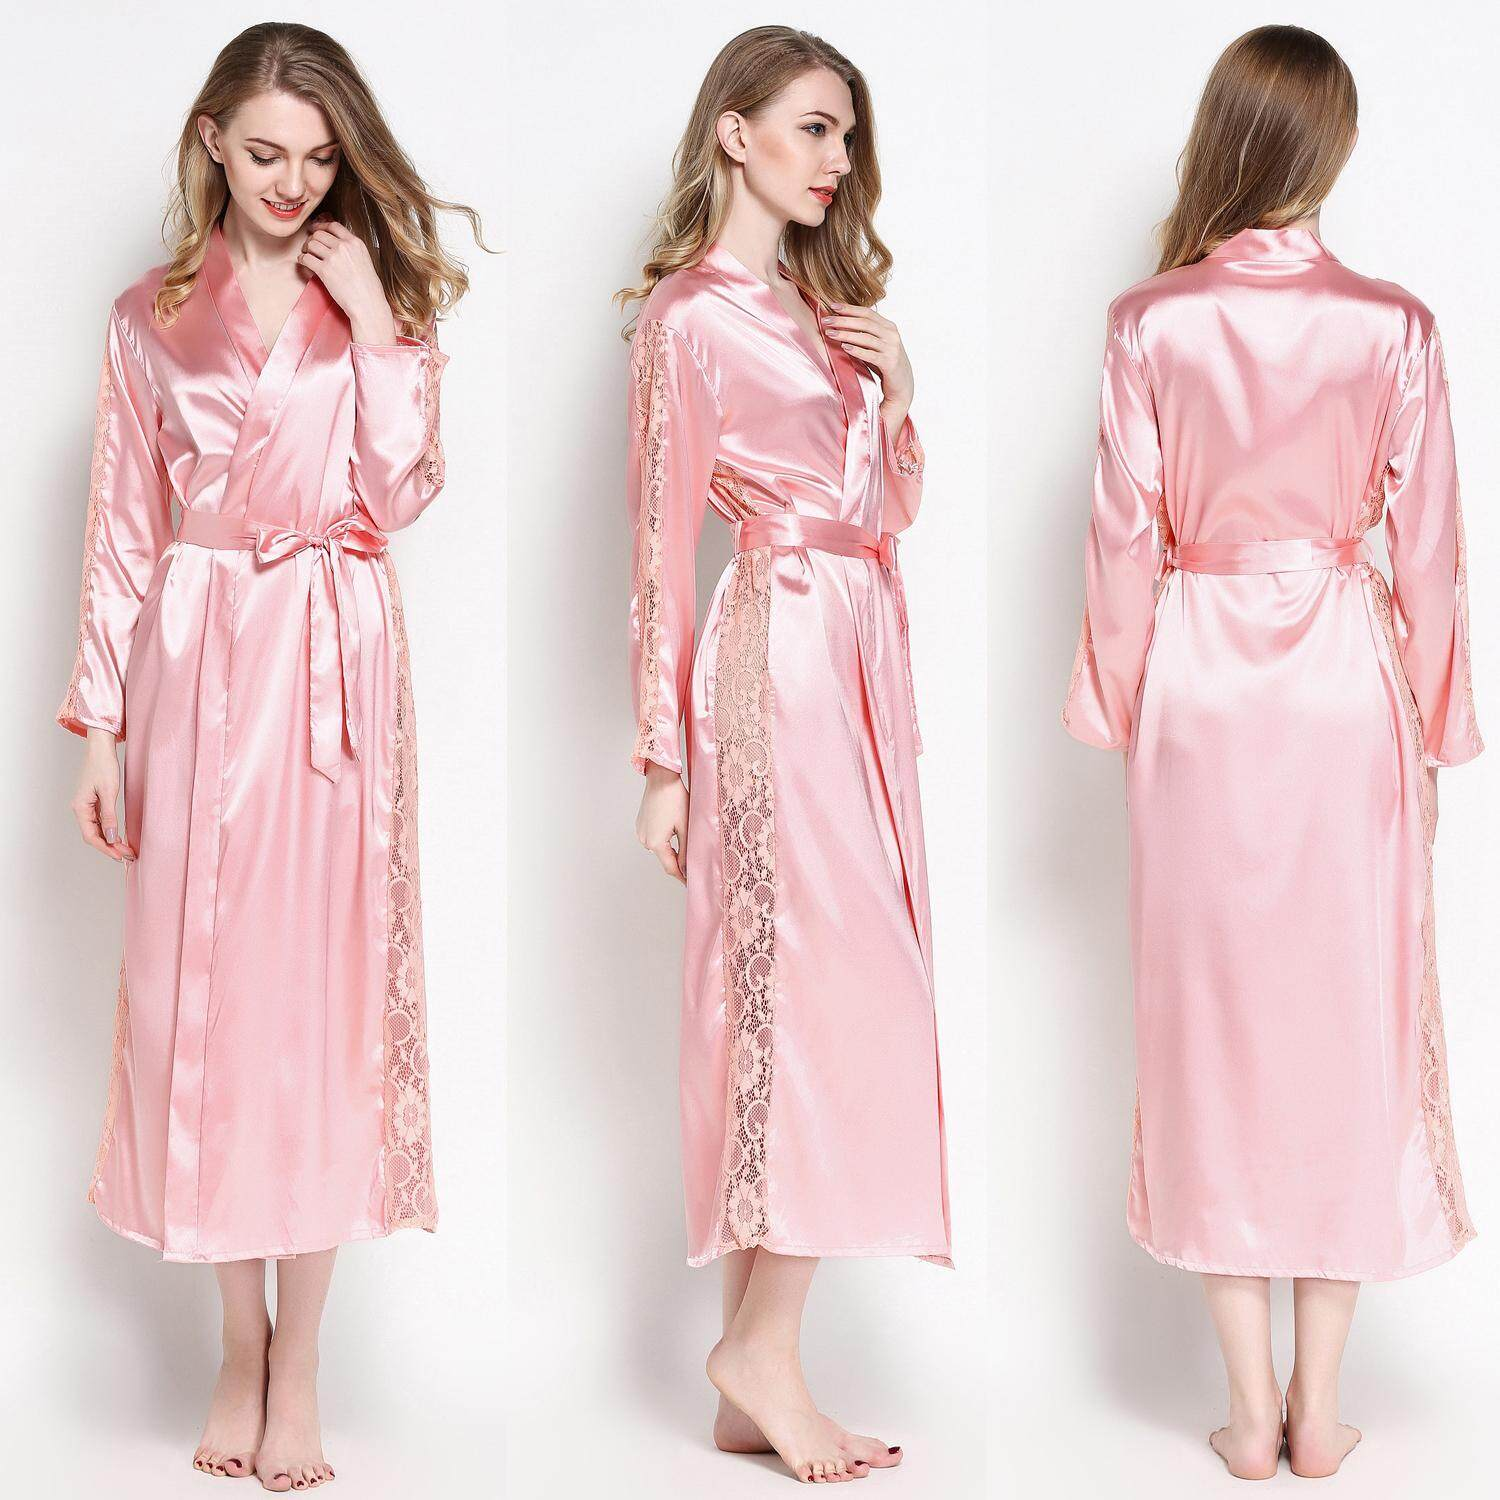 Loveu Store Women's Robe Maxi Dress Long Sleeve Nightgown Bridesmaid Dresses Pajamas Party Comfort Silk Feel Bathrobe Lounge Wear Home Wear Best Valentine Lover Gift Birthday Gift Lingerie for Girl Lady Women - intl